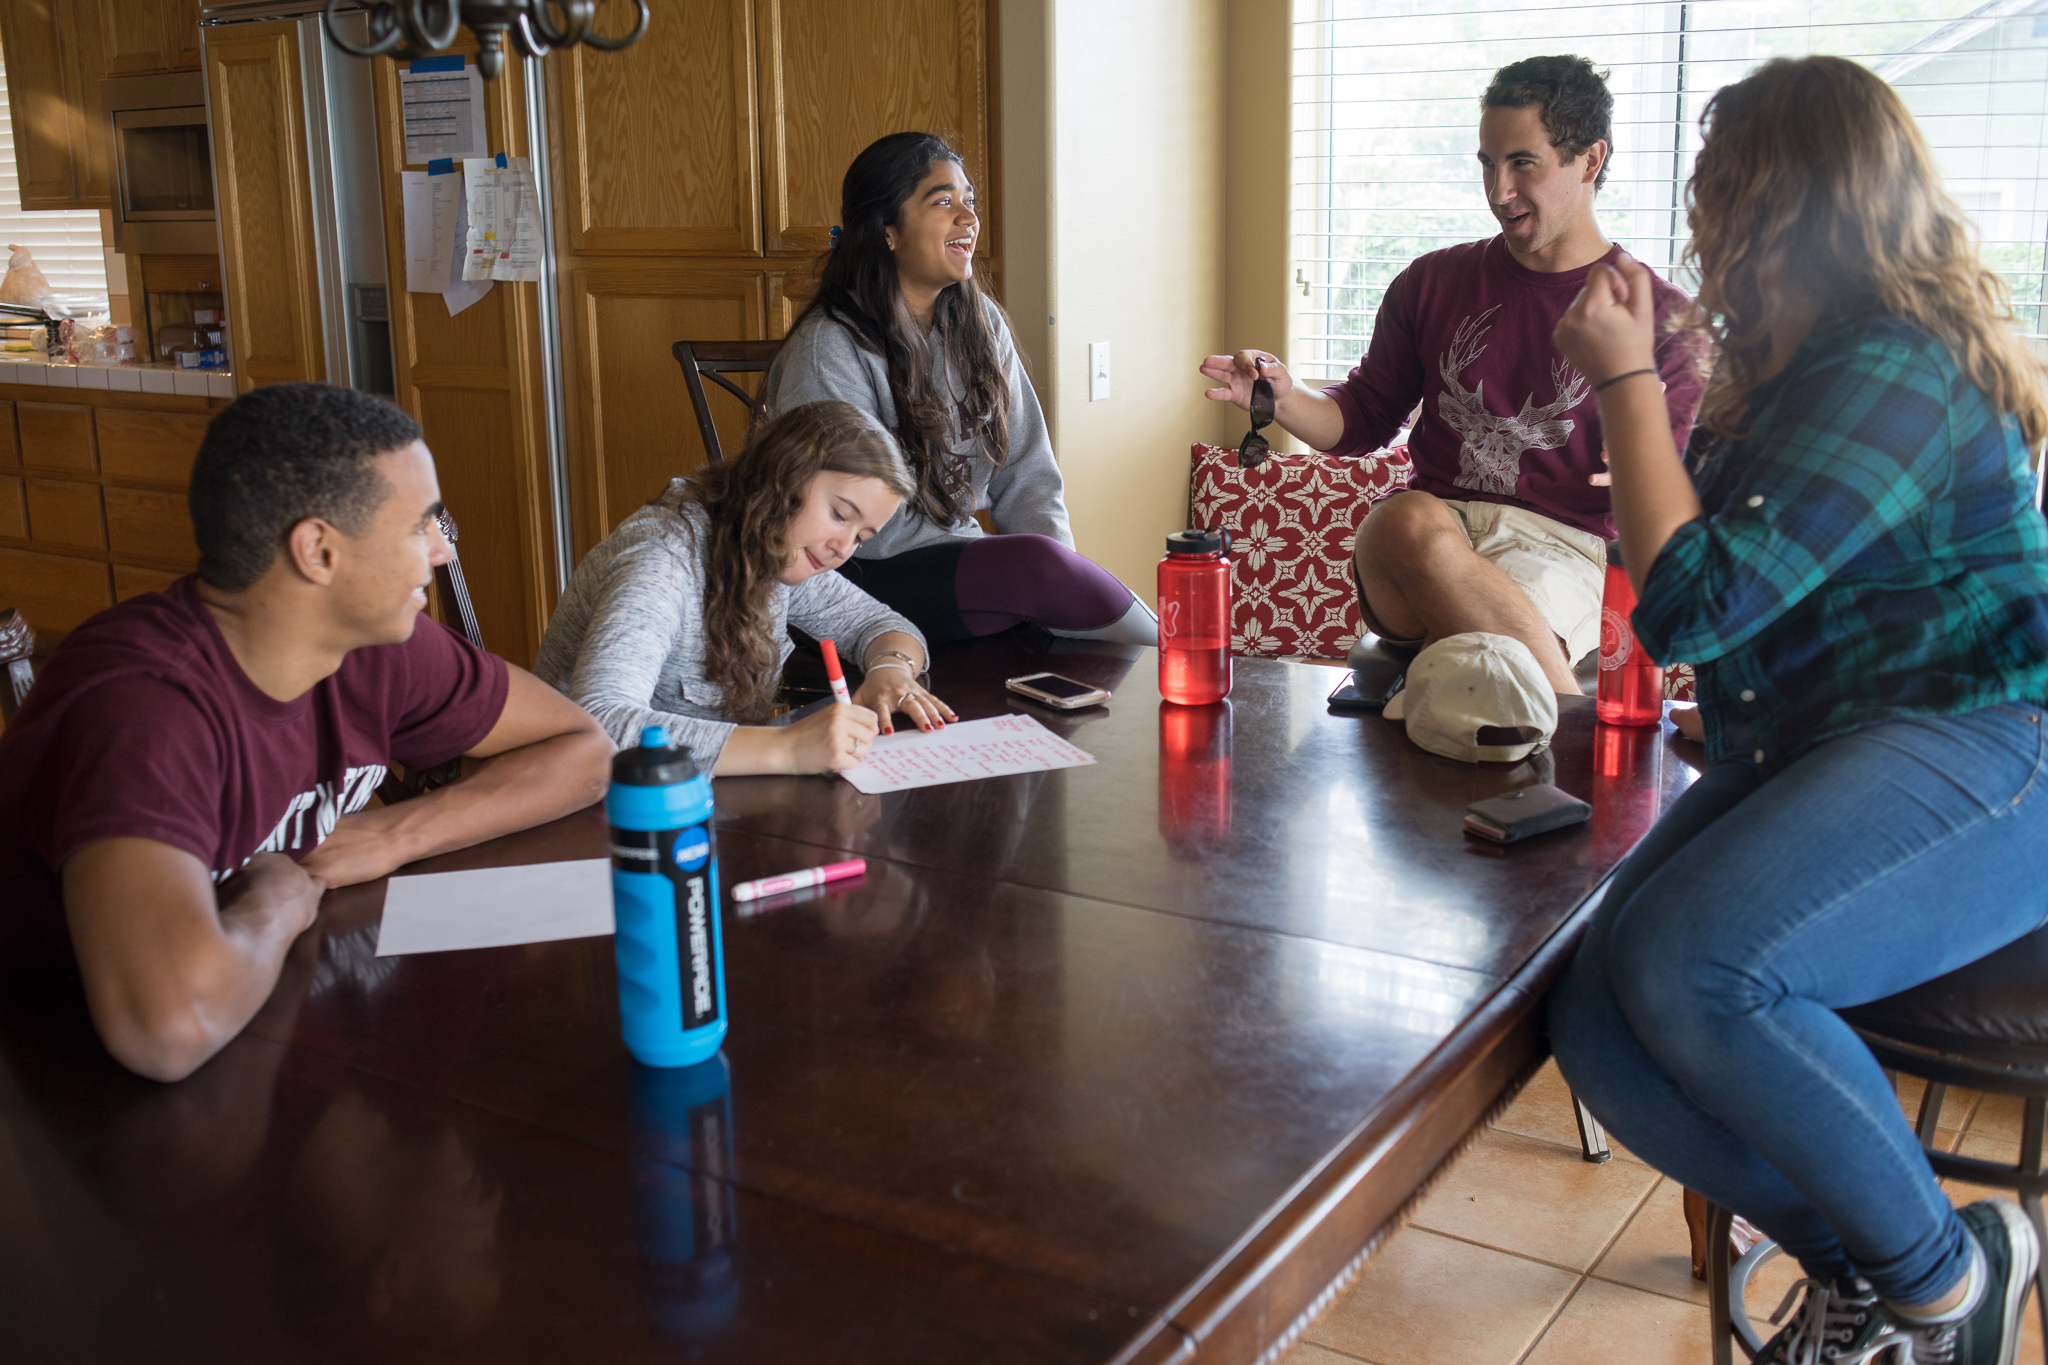 Students brainstorming ideas at the Moonshot House. Photo courtesy of Wes Edwards '18.